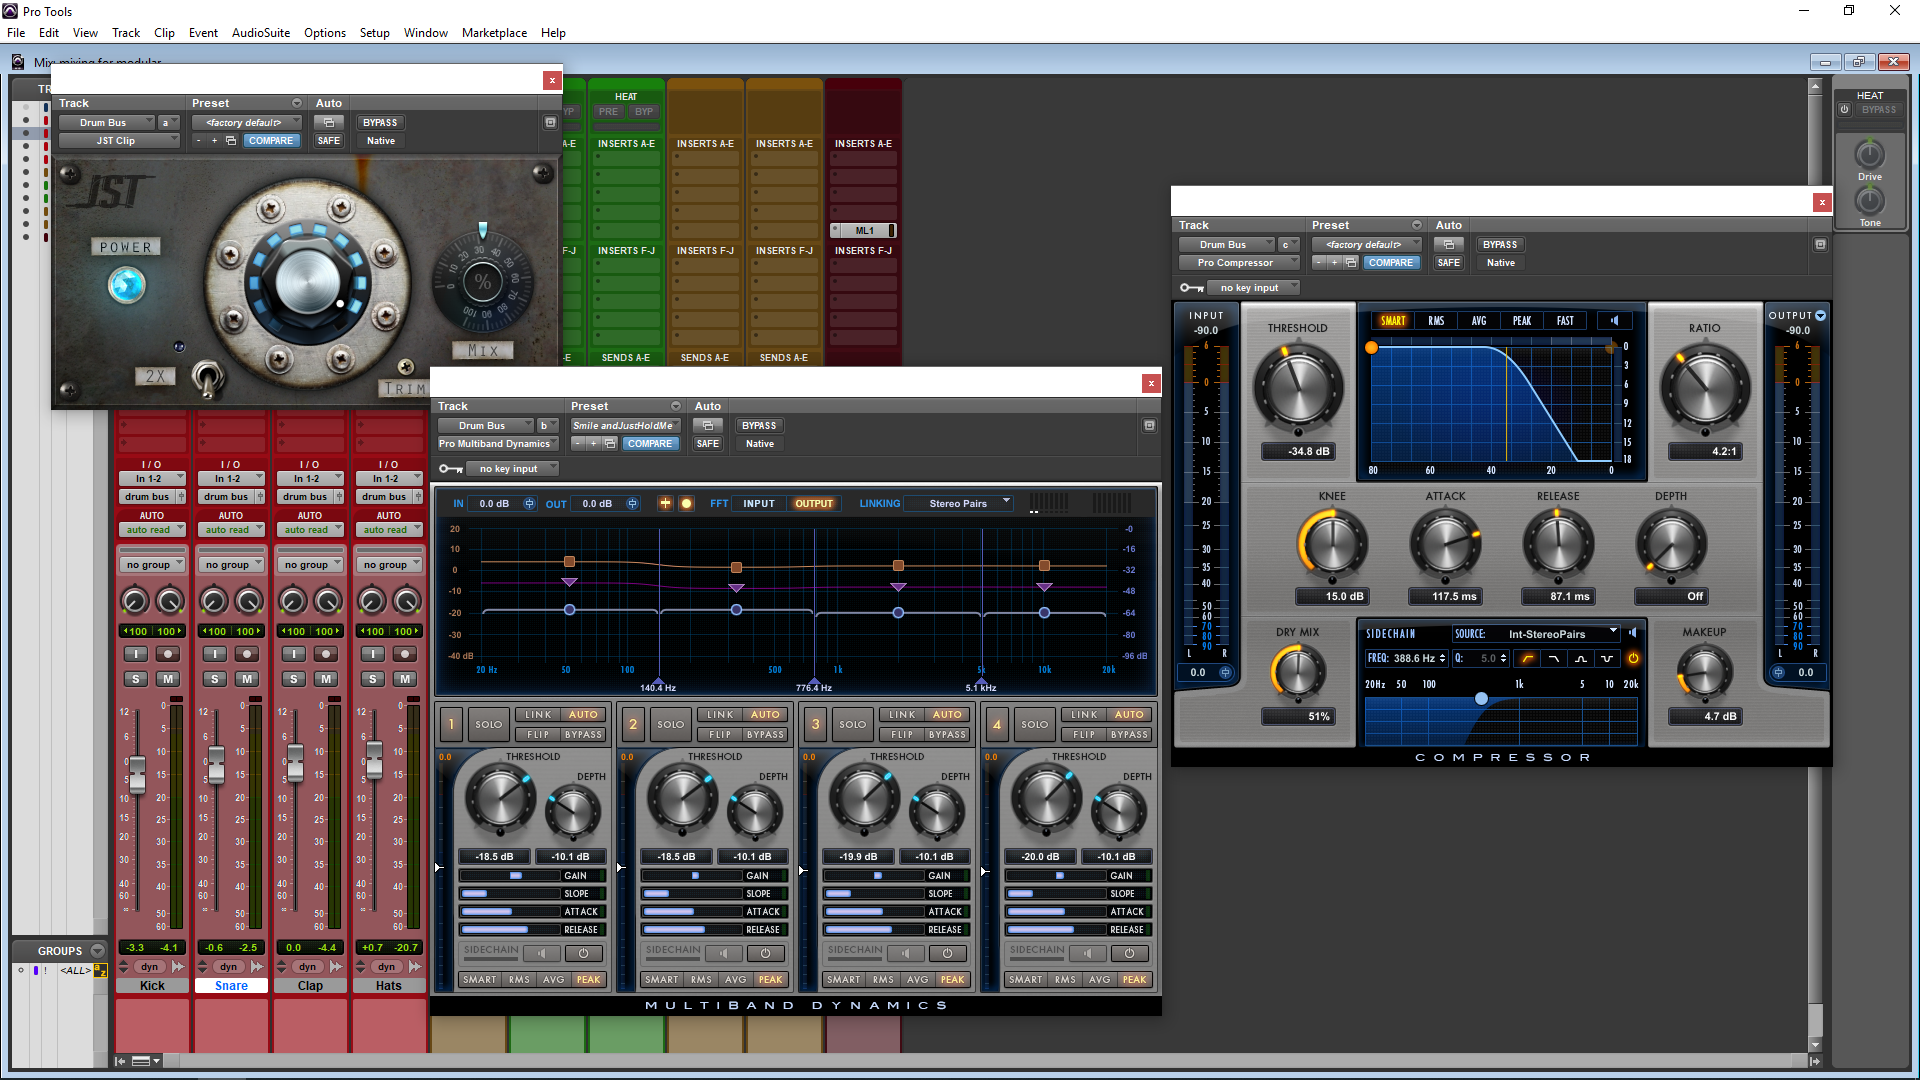 Image shows Pro Tools Mixing Screen